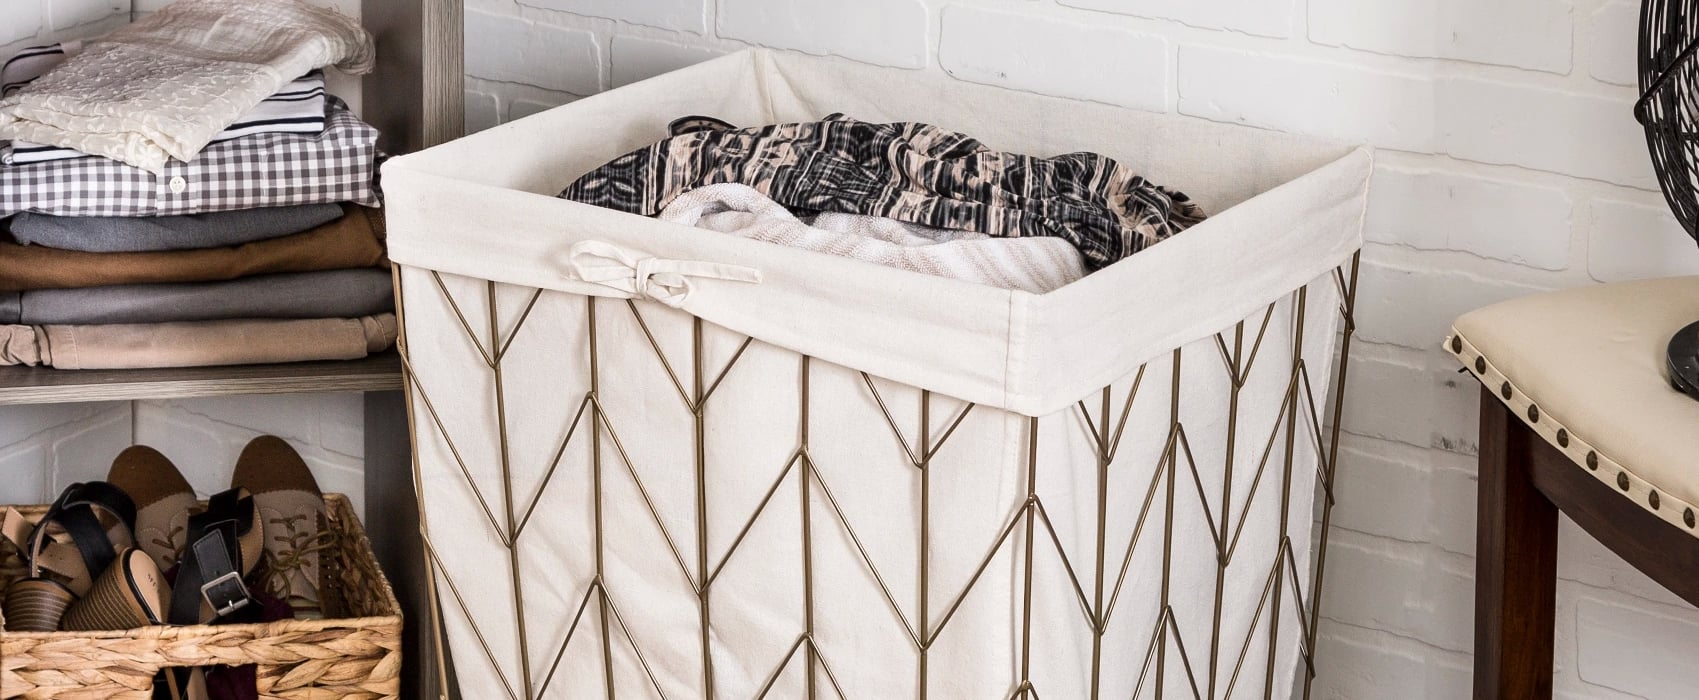 Best Organization Products at Target | 2020